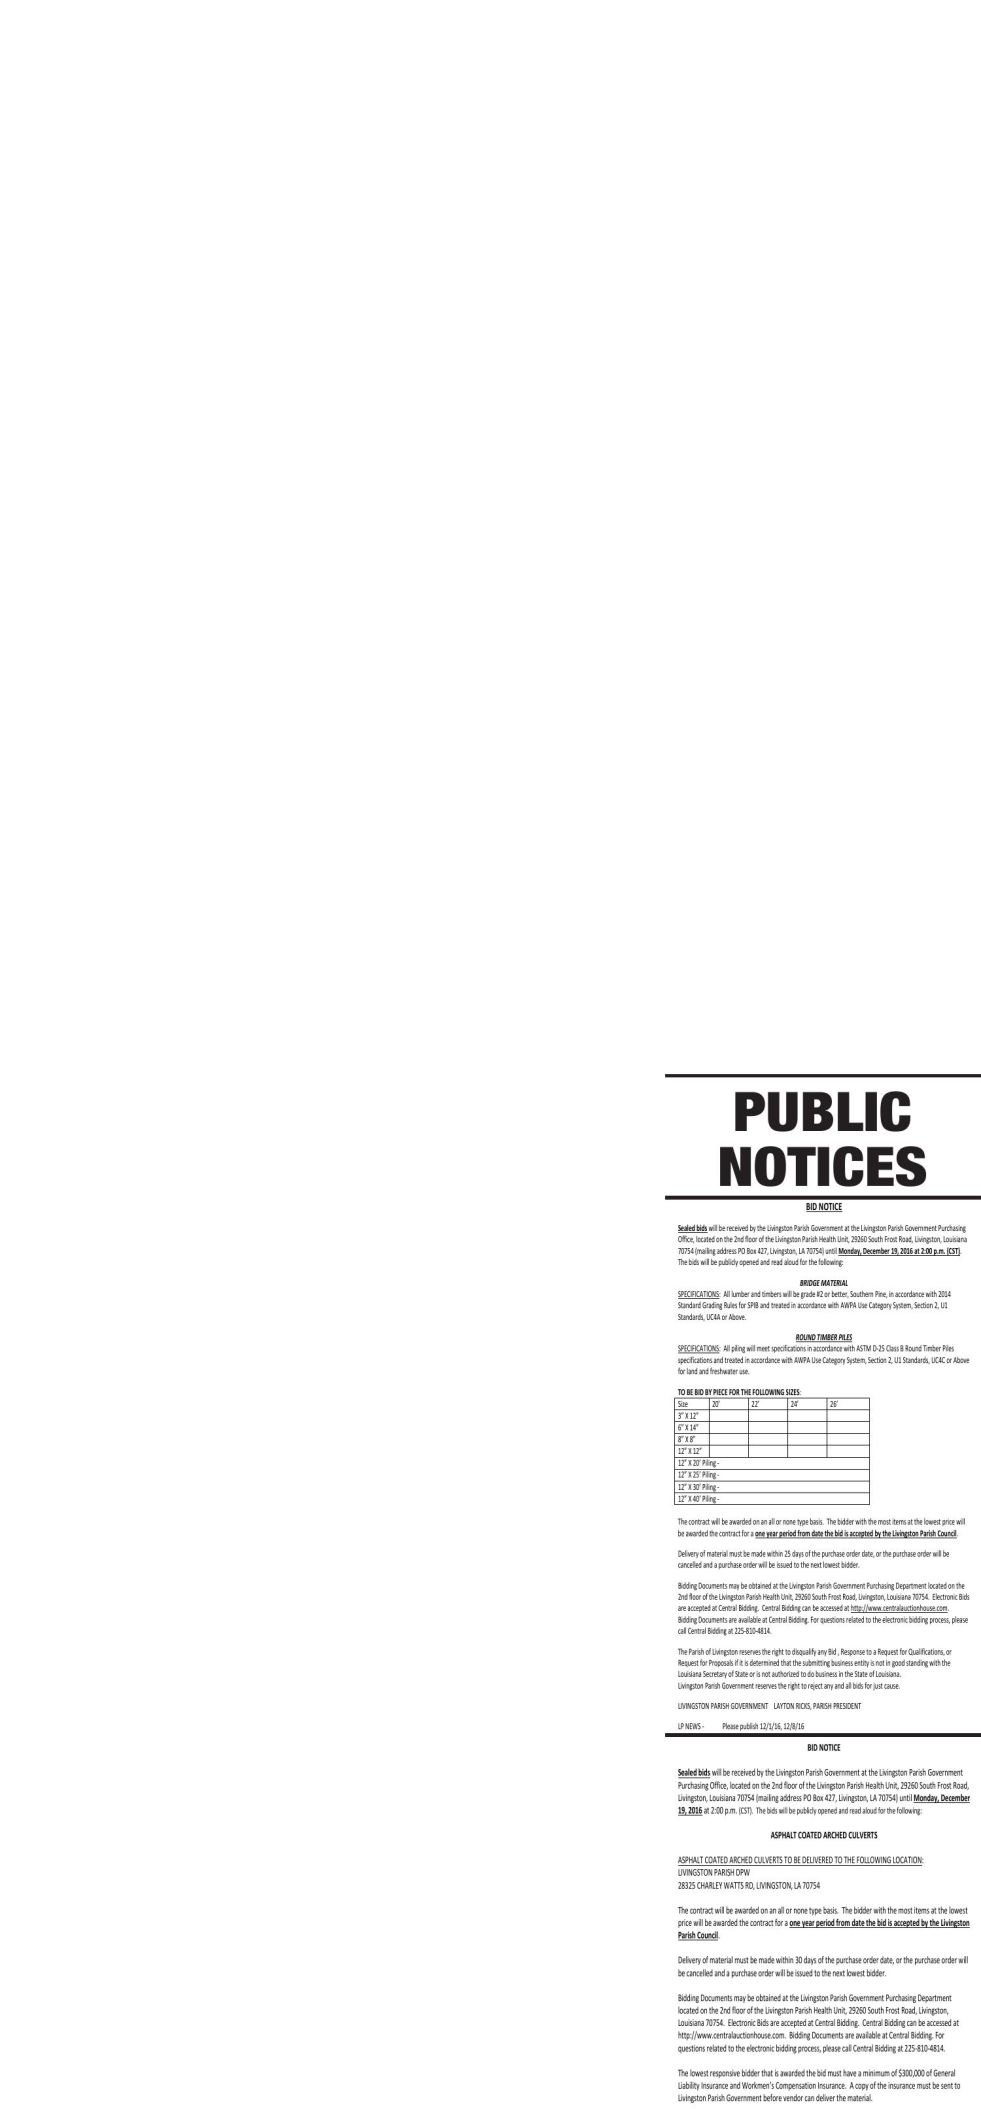 Public Notices published December 1, 2016